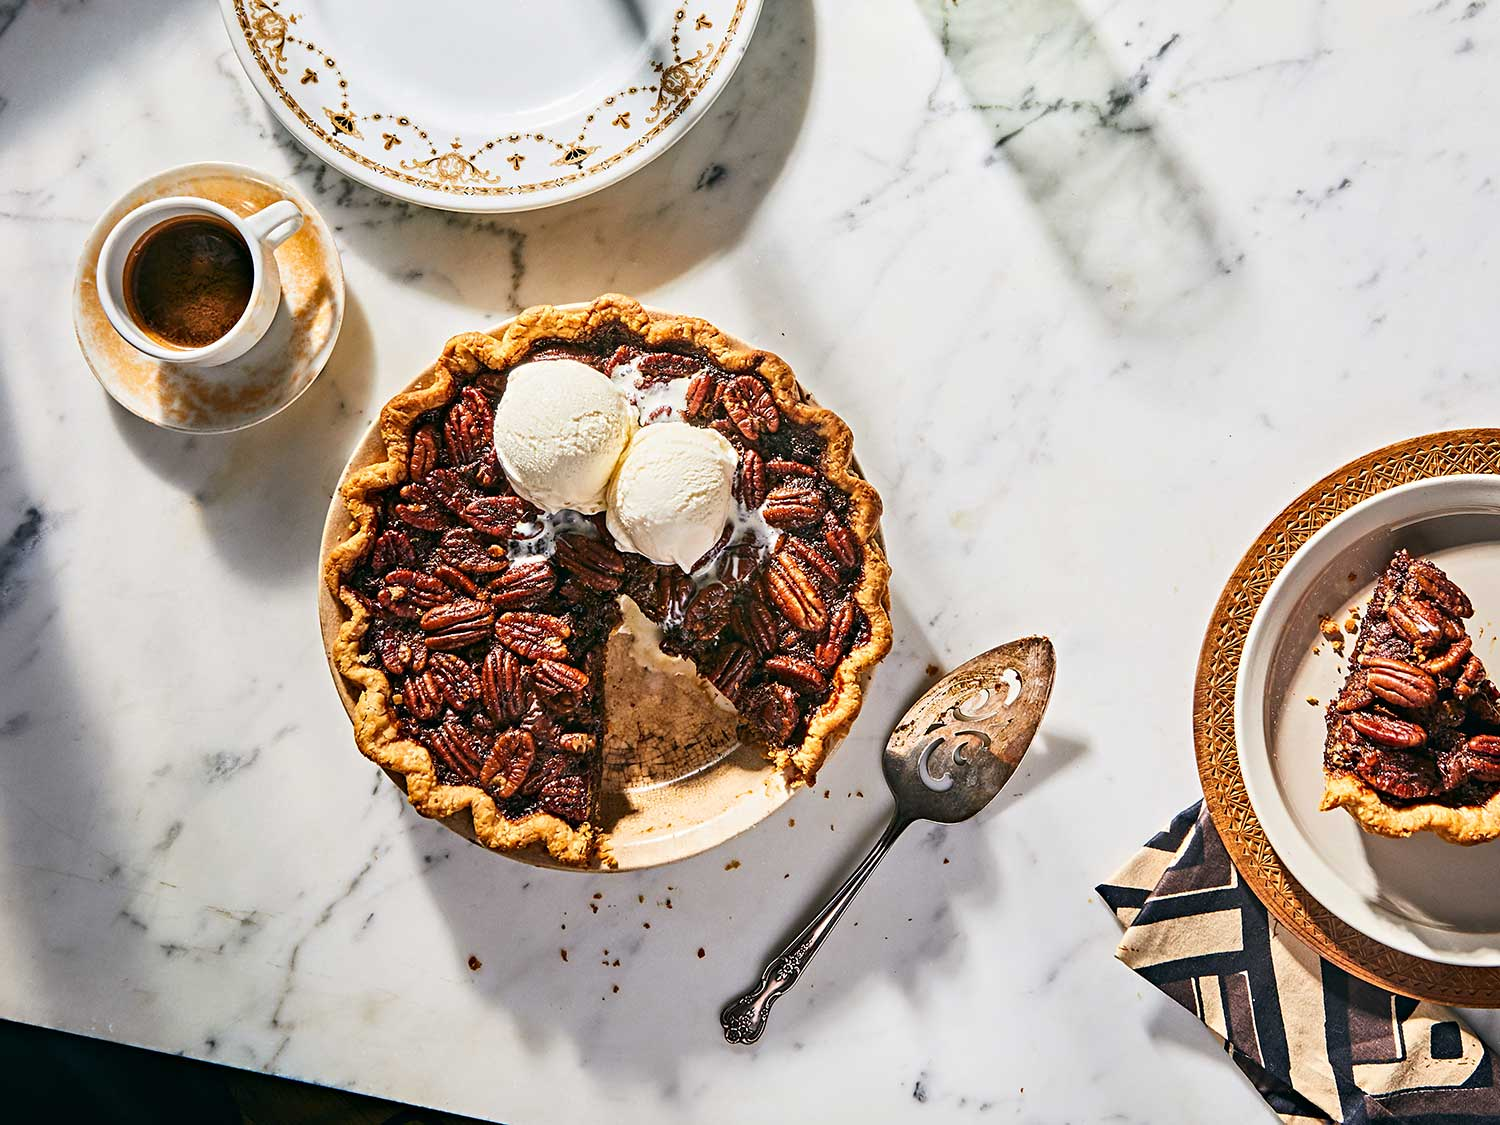 Bourbon Chocolate Pecan Pie served with vanilla ice cream on marble counter.